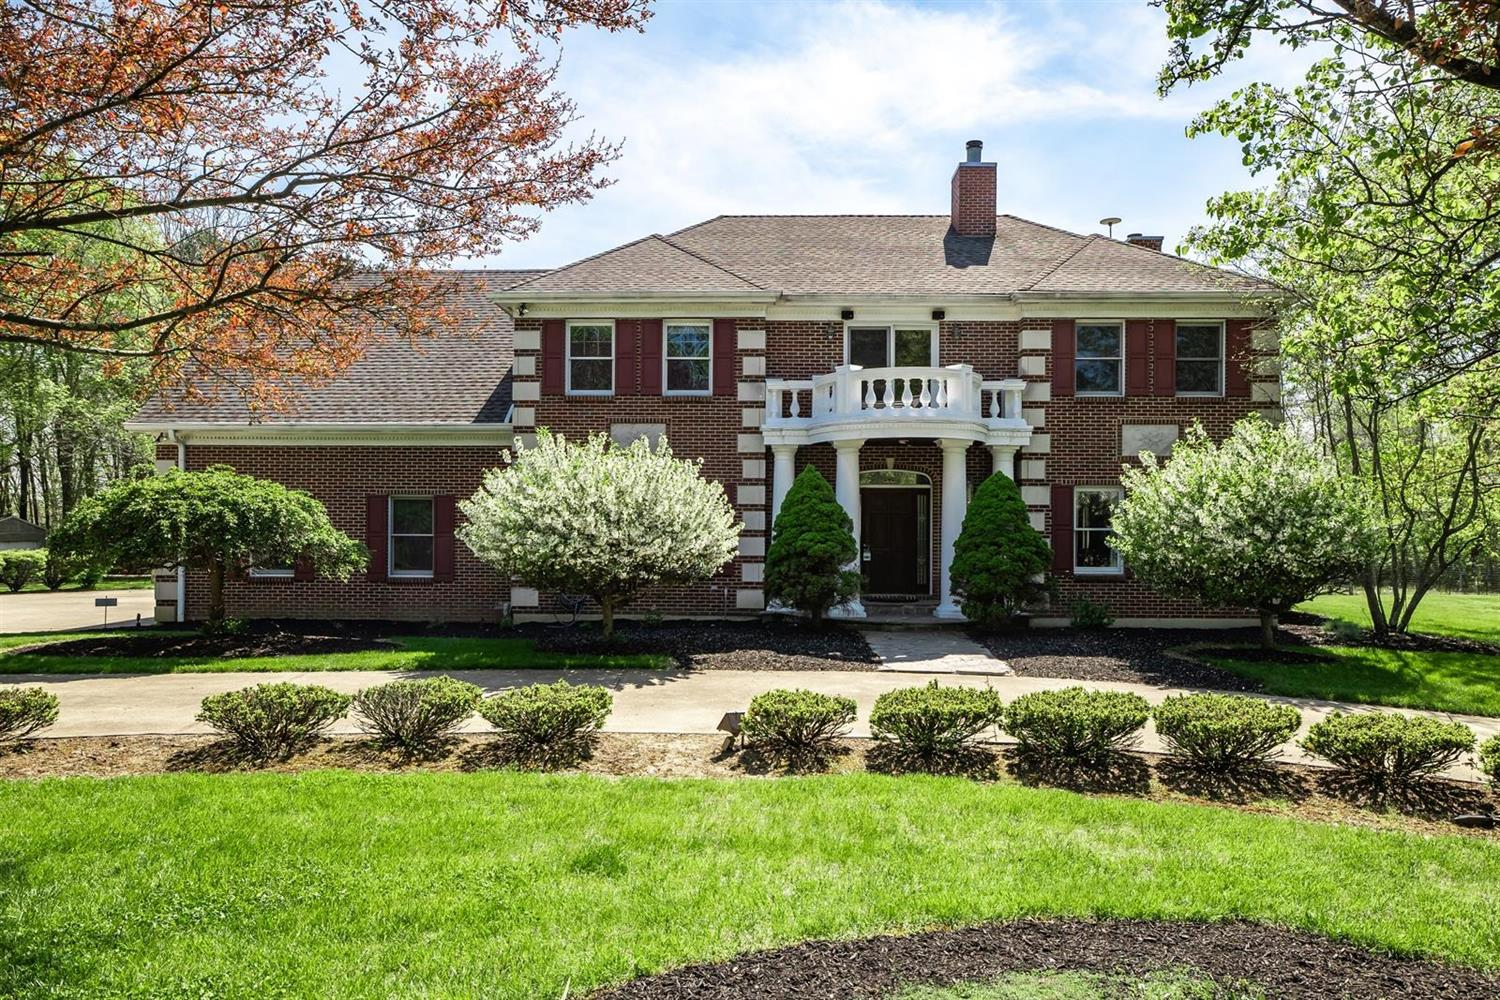 6443 Lewis Road, Miami Twp, Ohio 45140, 4 Bedrooms Bedrooms, 14 Rooms Rooms,4 BathroomsBathrooms,Single Family Residence,For Sale,Lewis,1712174